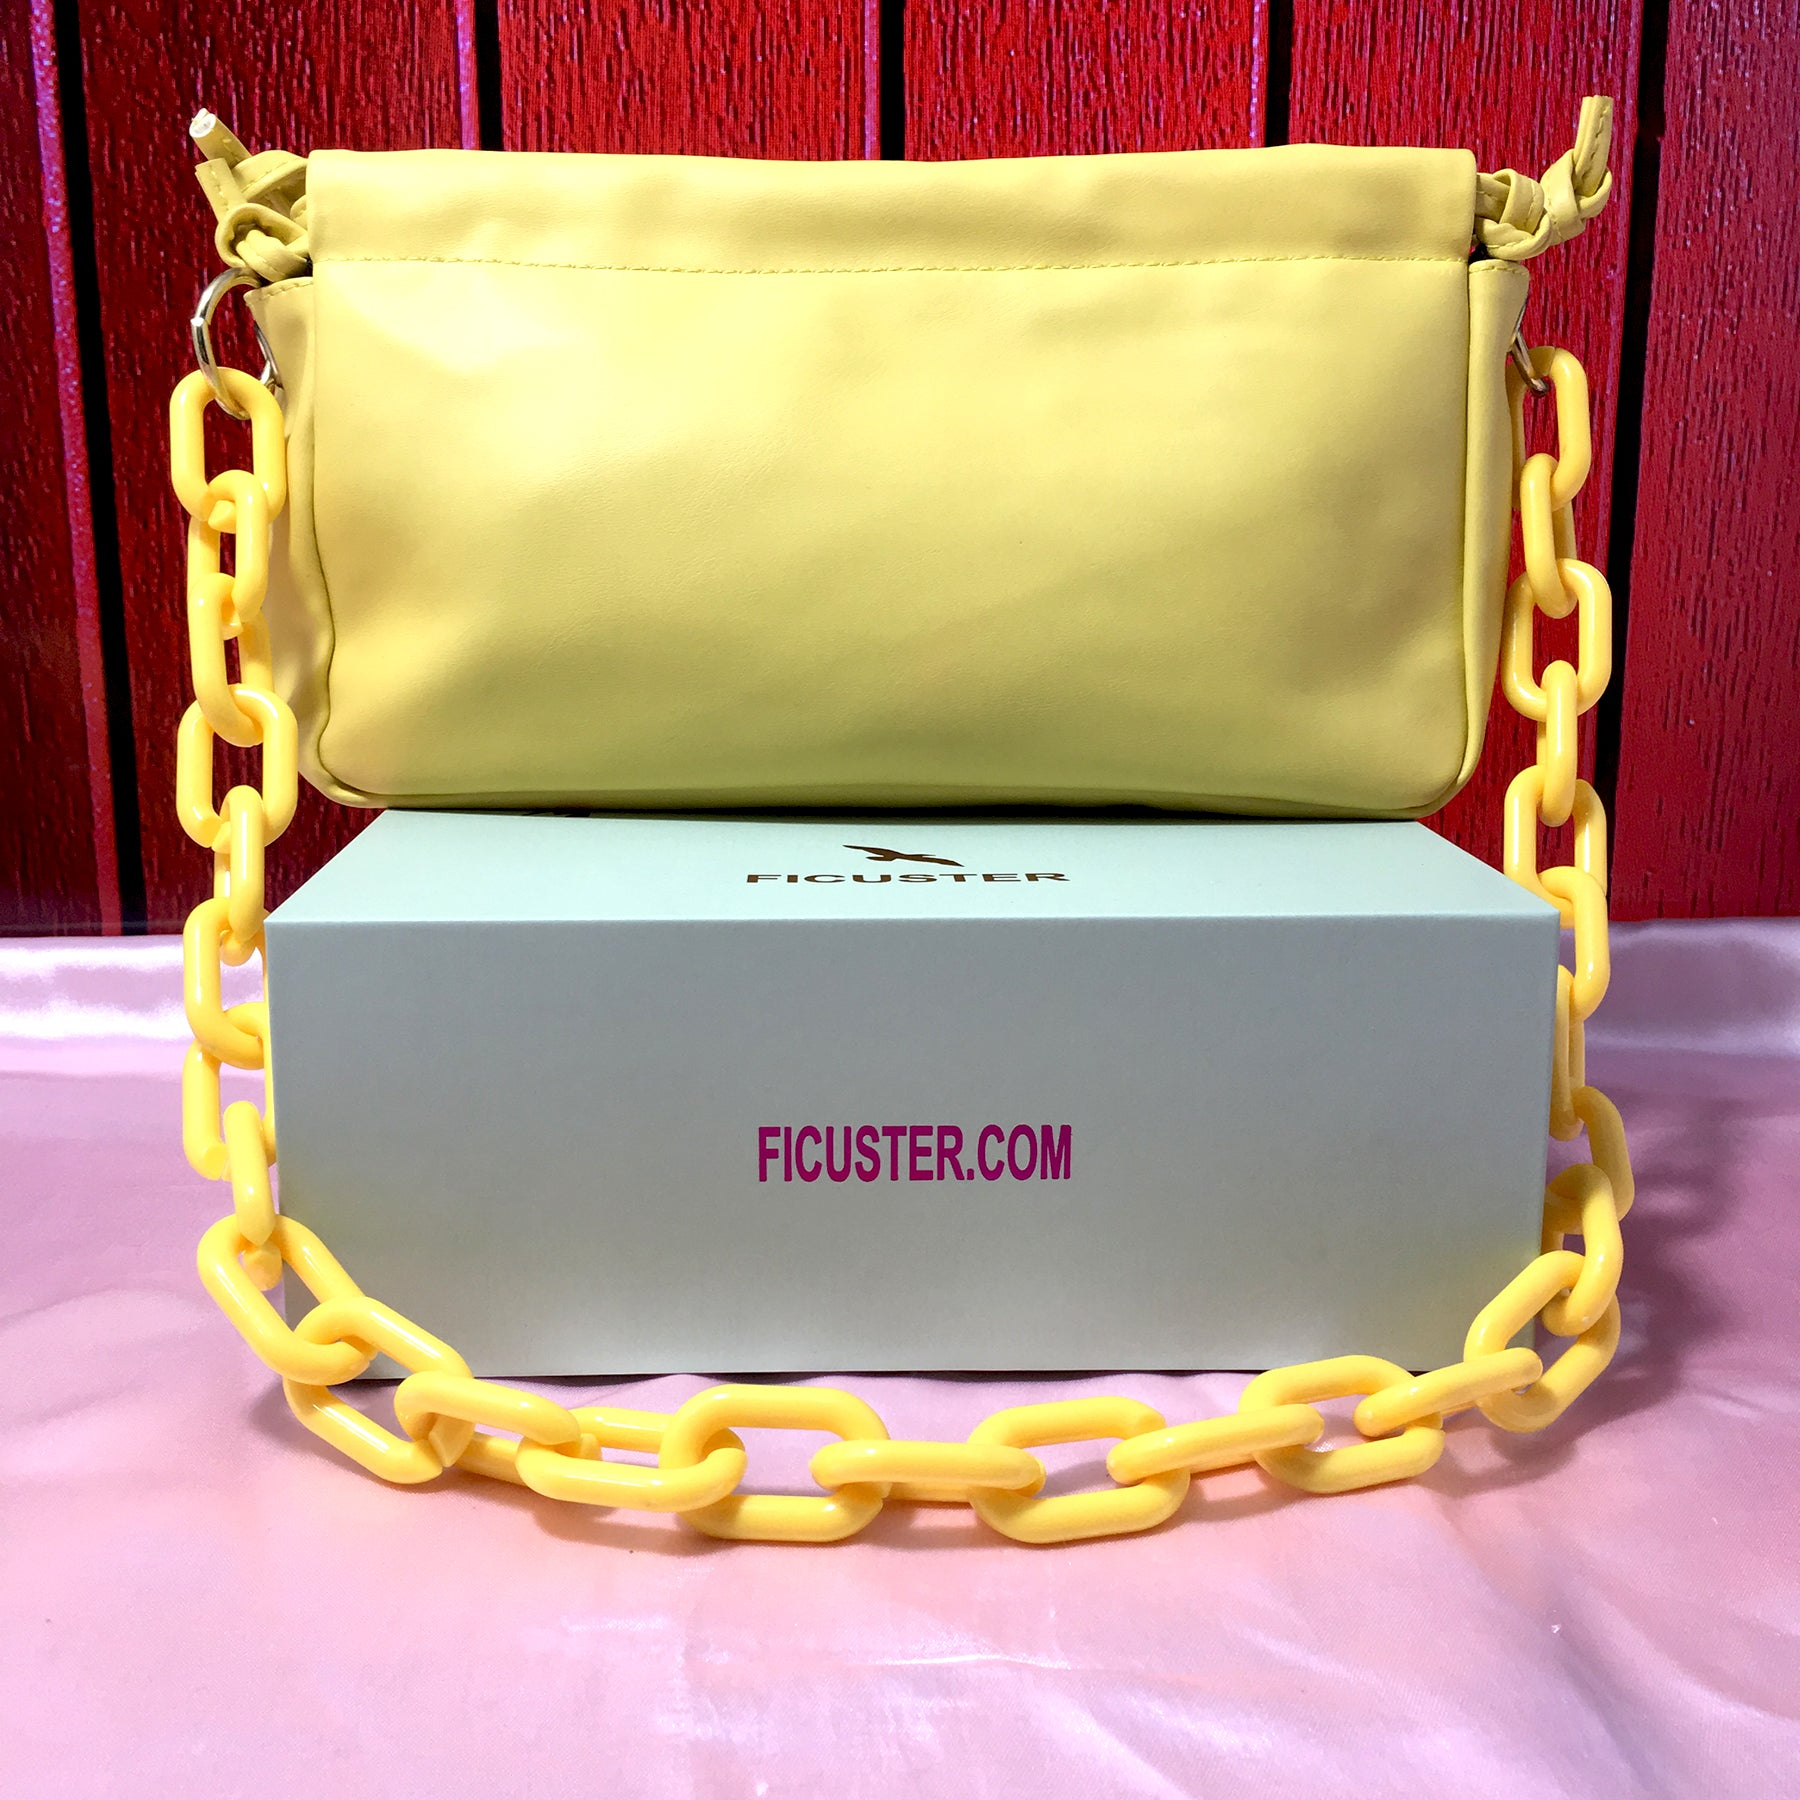 Ficuster Solid Yellow Sling Bag